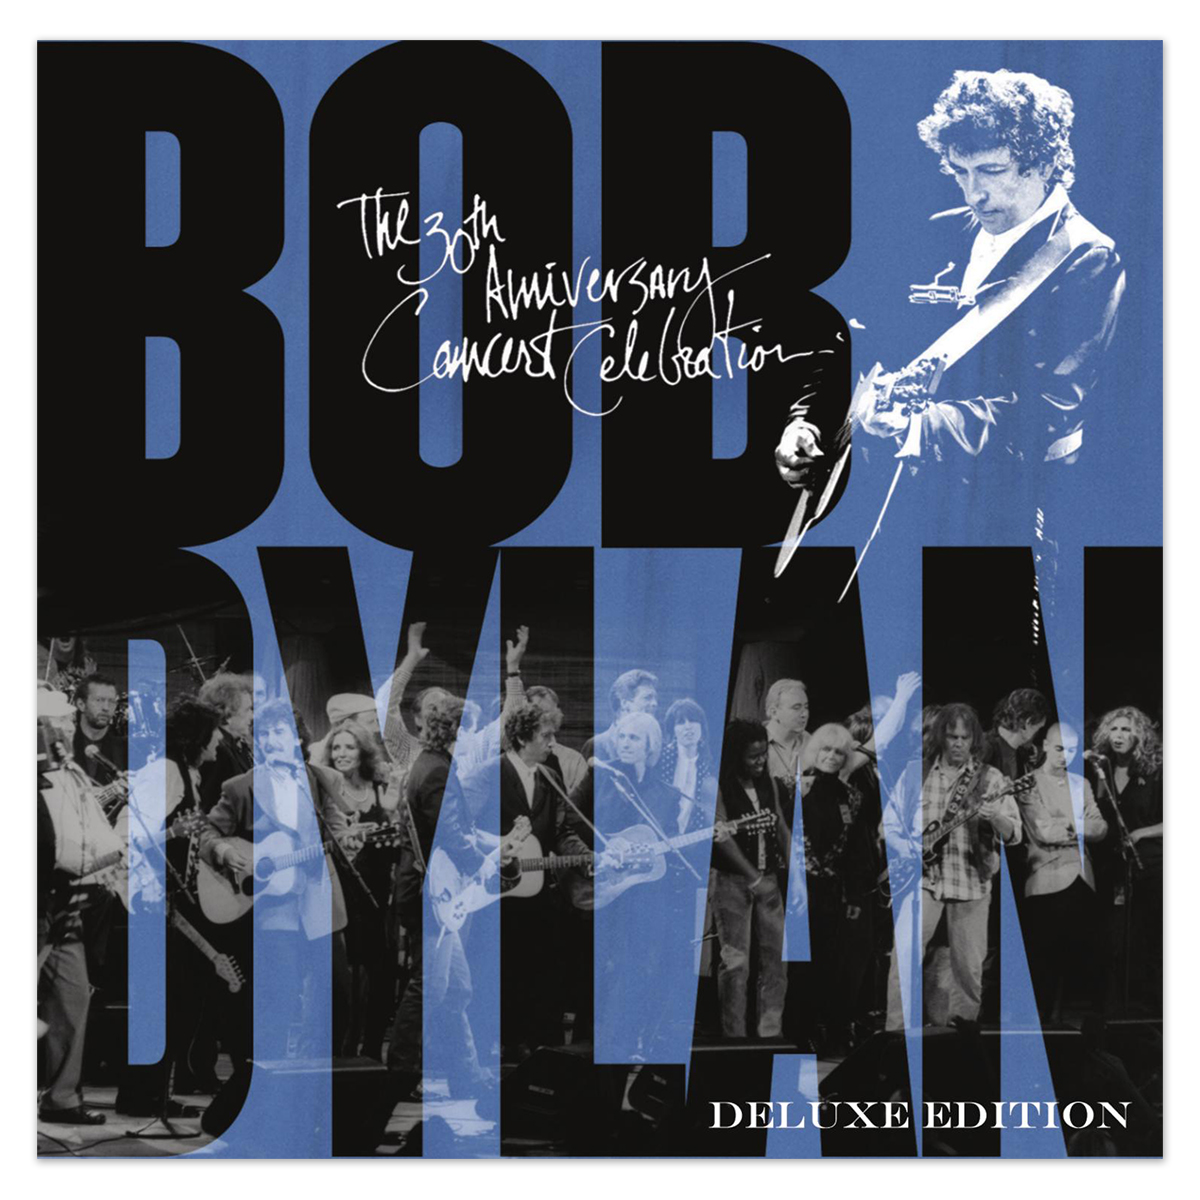 The 30th Anniversary Concert Celebration Deluxe Edition CD